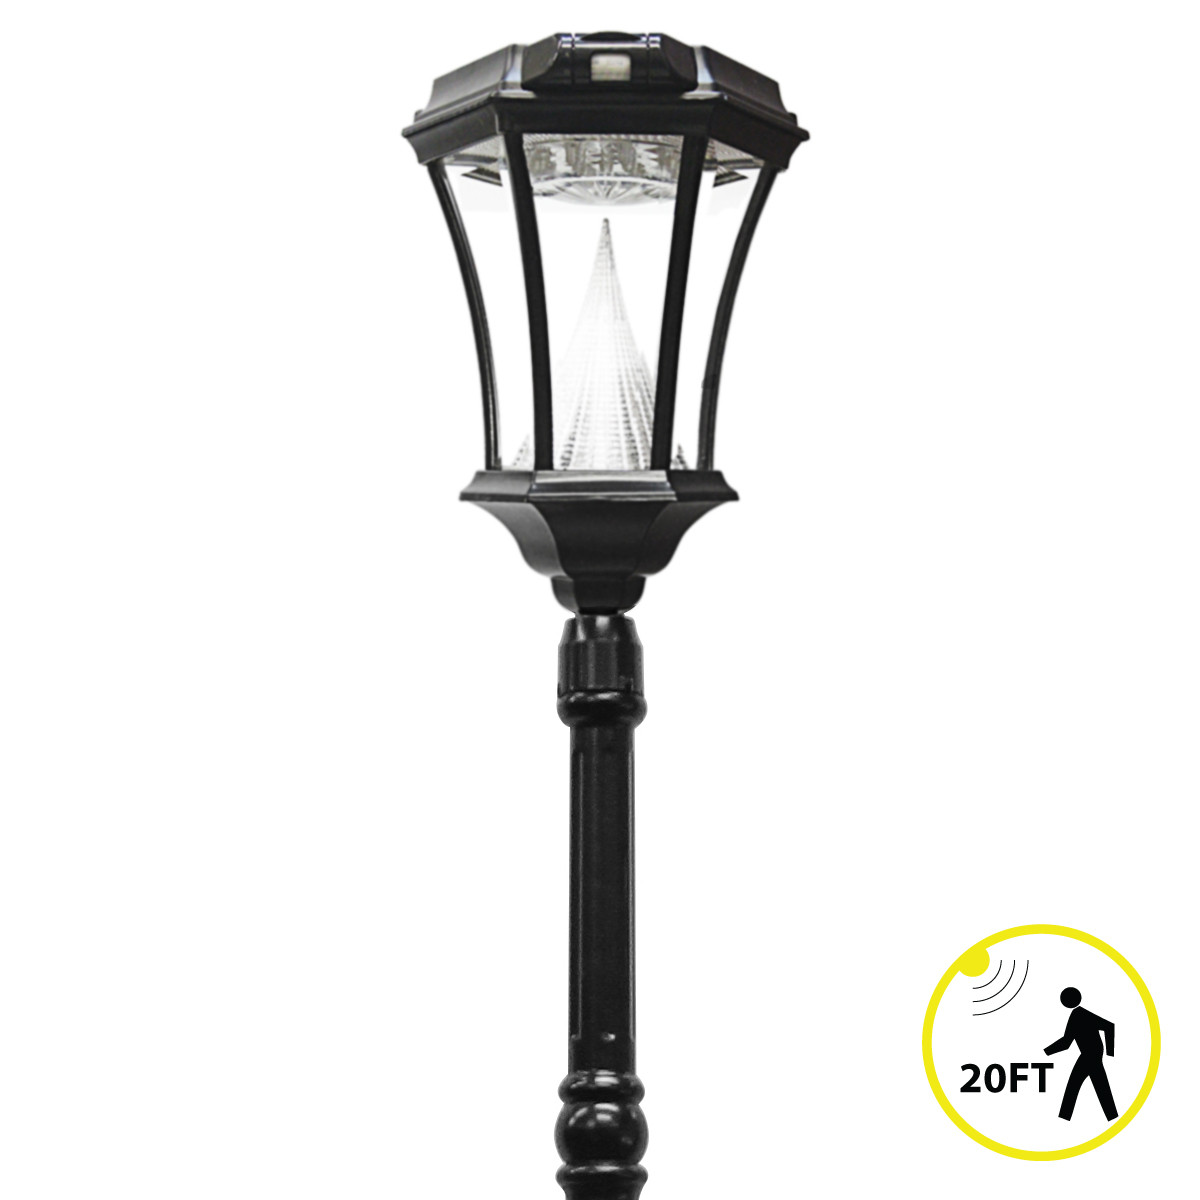 Best ideas about Solar Lamp Post Lights . Save or Pin Victorian PIR Series – Solar Lamp Post With Motion Sensor Now.